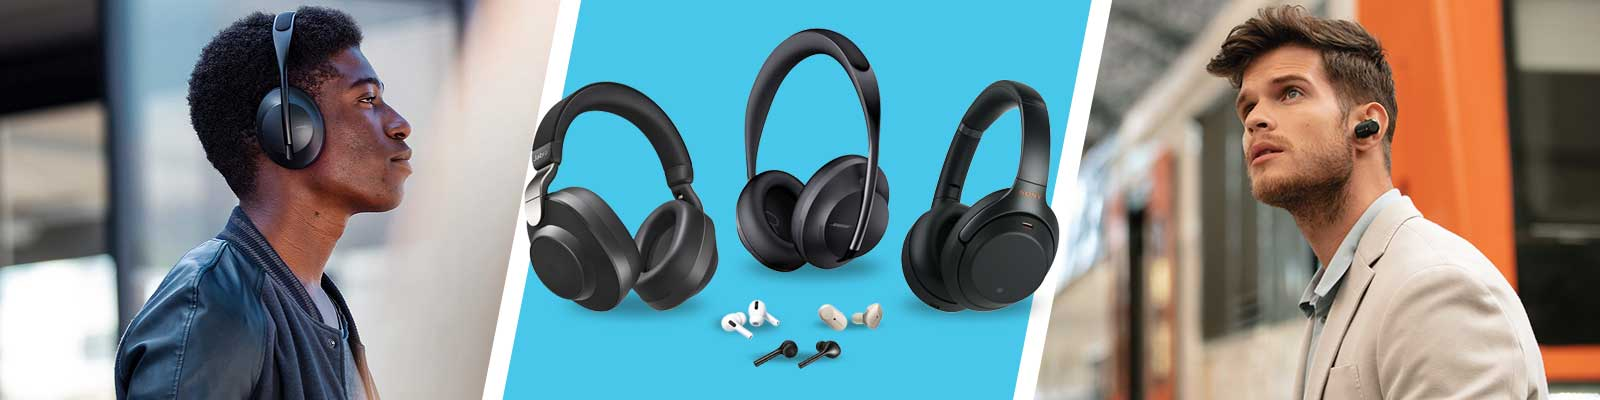 casques noise cancelling recommandations